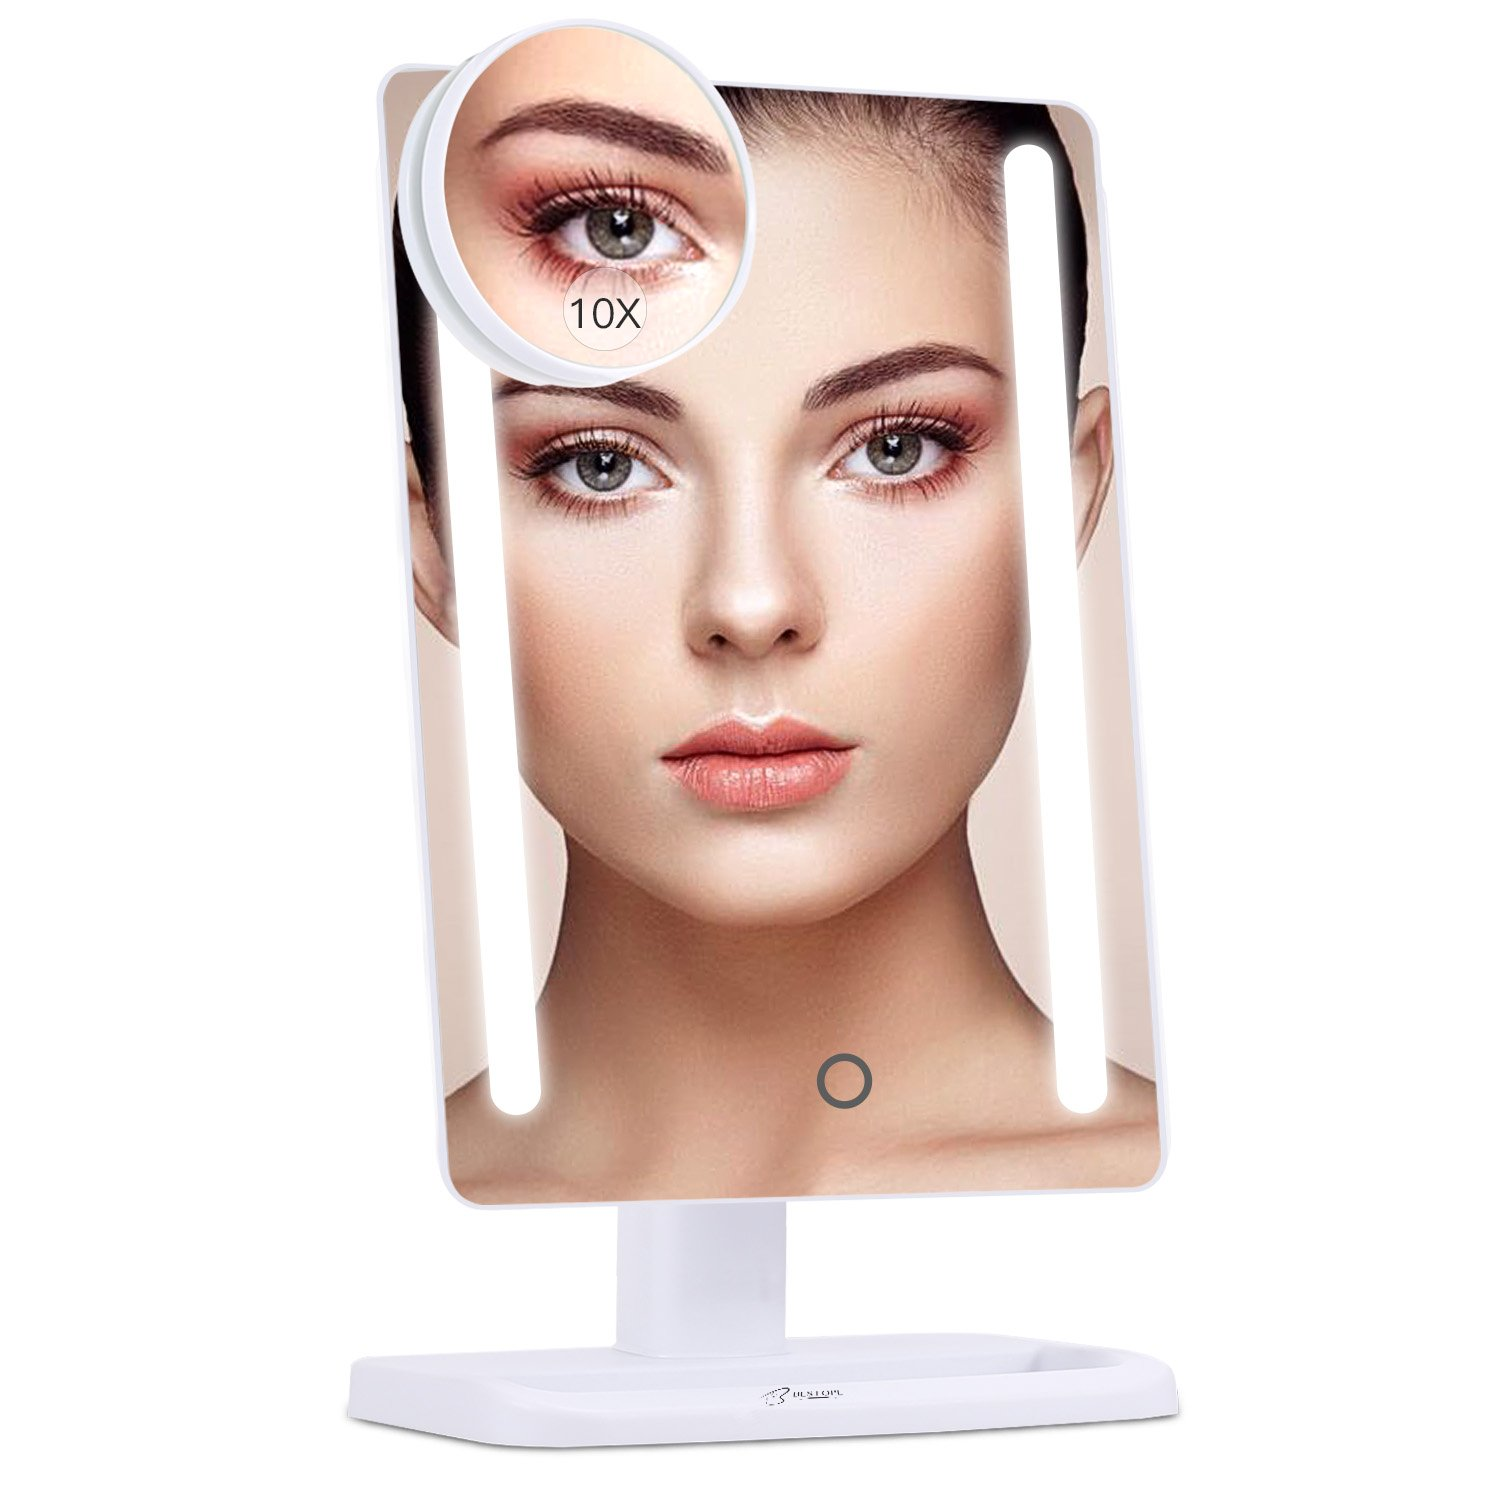 BESTOPE 24 LED Makeup Vanity Mirror with Removeable 10x Magnification Mirror, 12inch Larger Screen, 180° Adjustable Rotation, Dual Power Supply, High Definition Lighted Mirrir (Black) 180° Adjustable Rotation BESTOPE CA